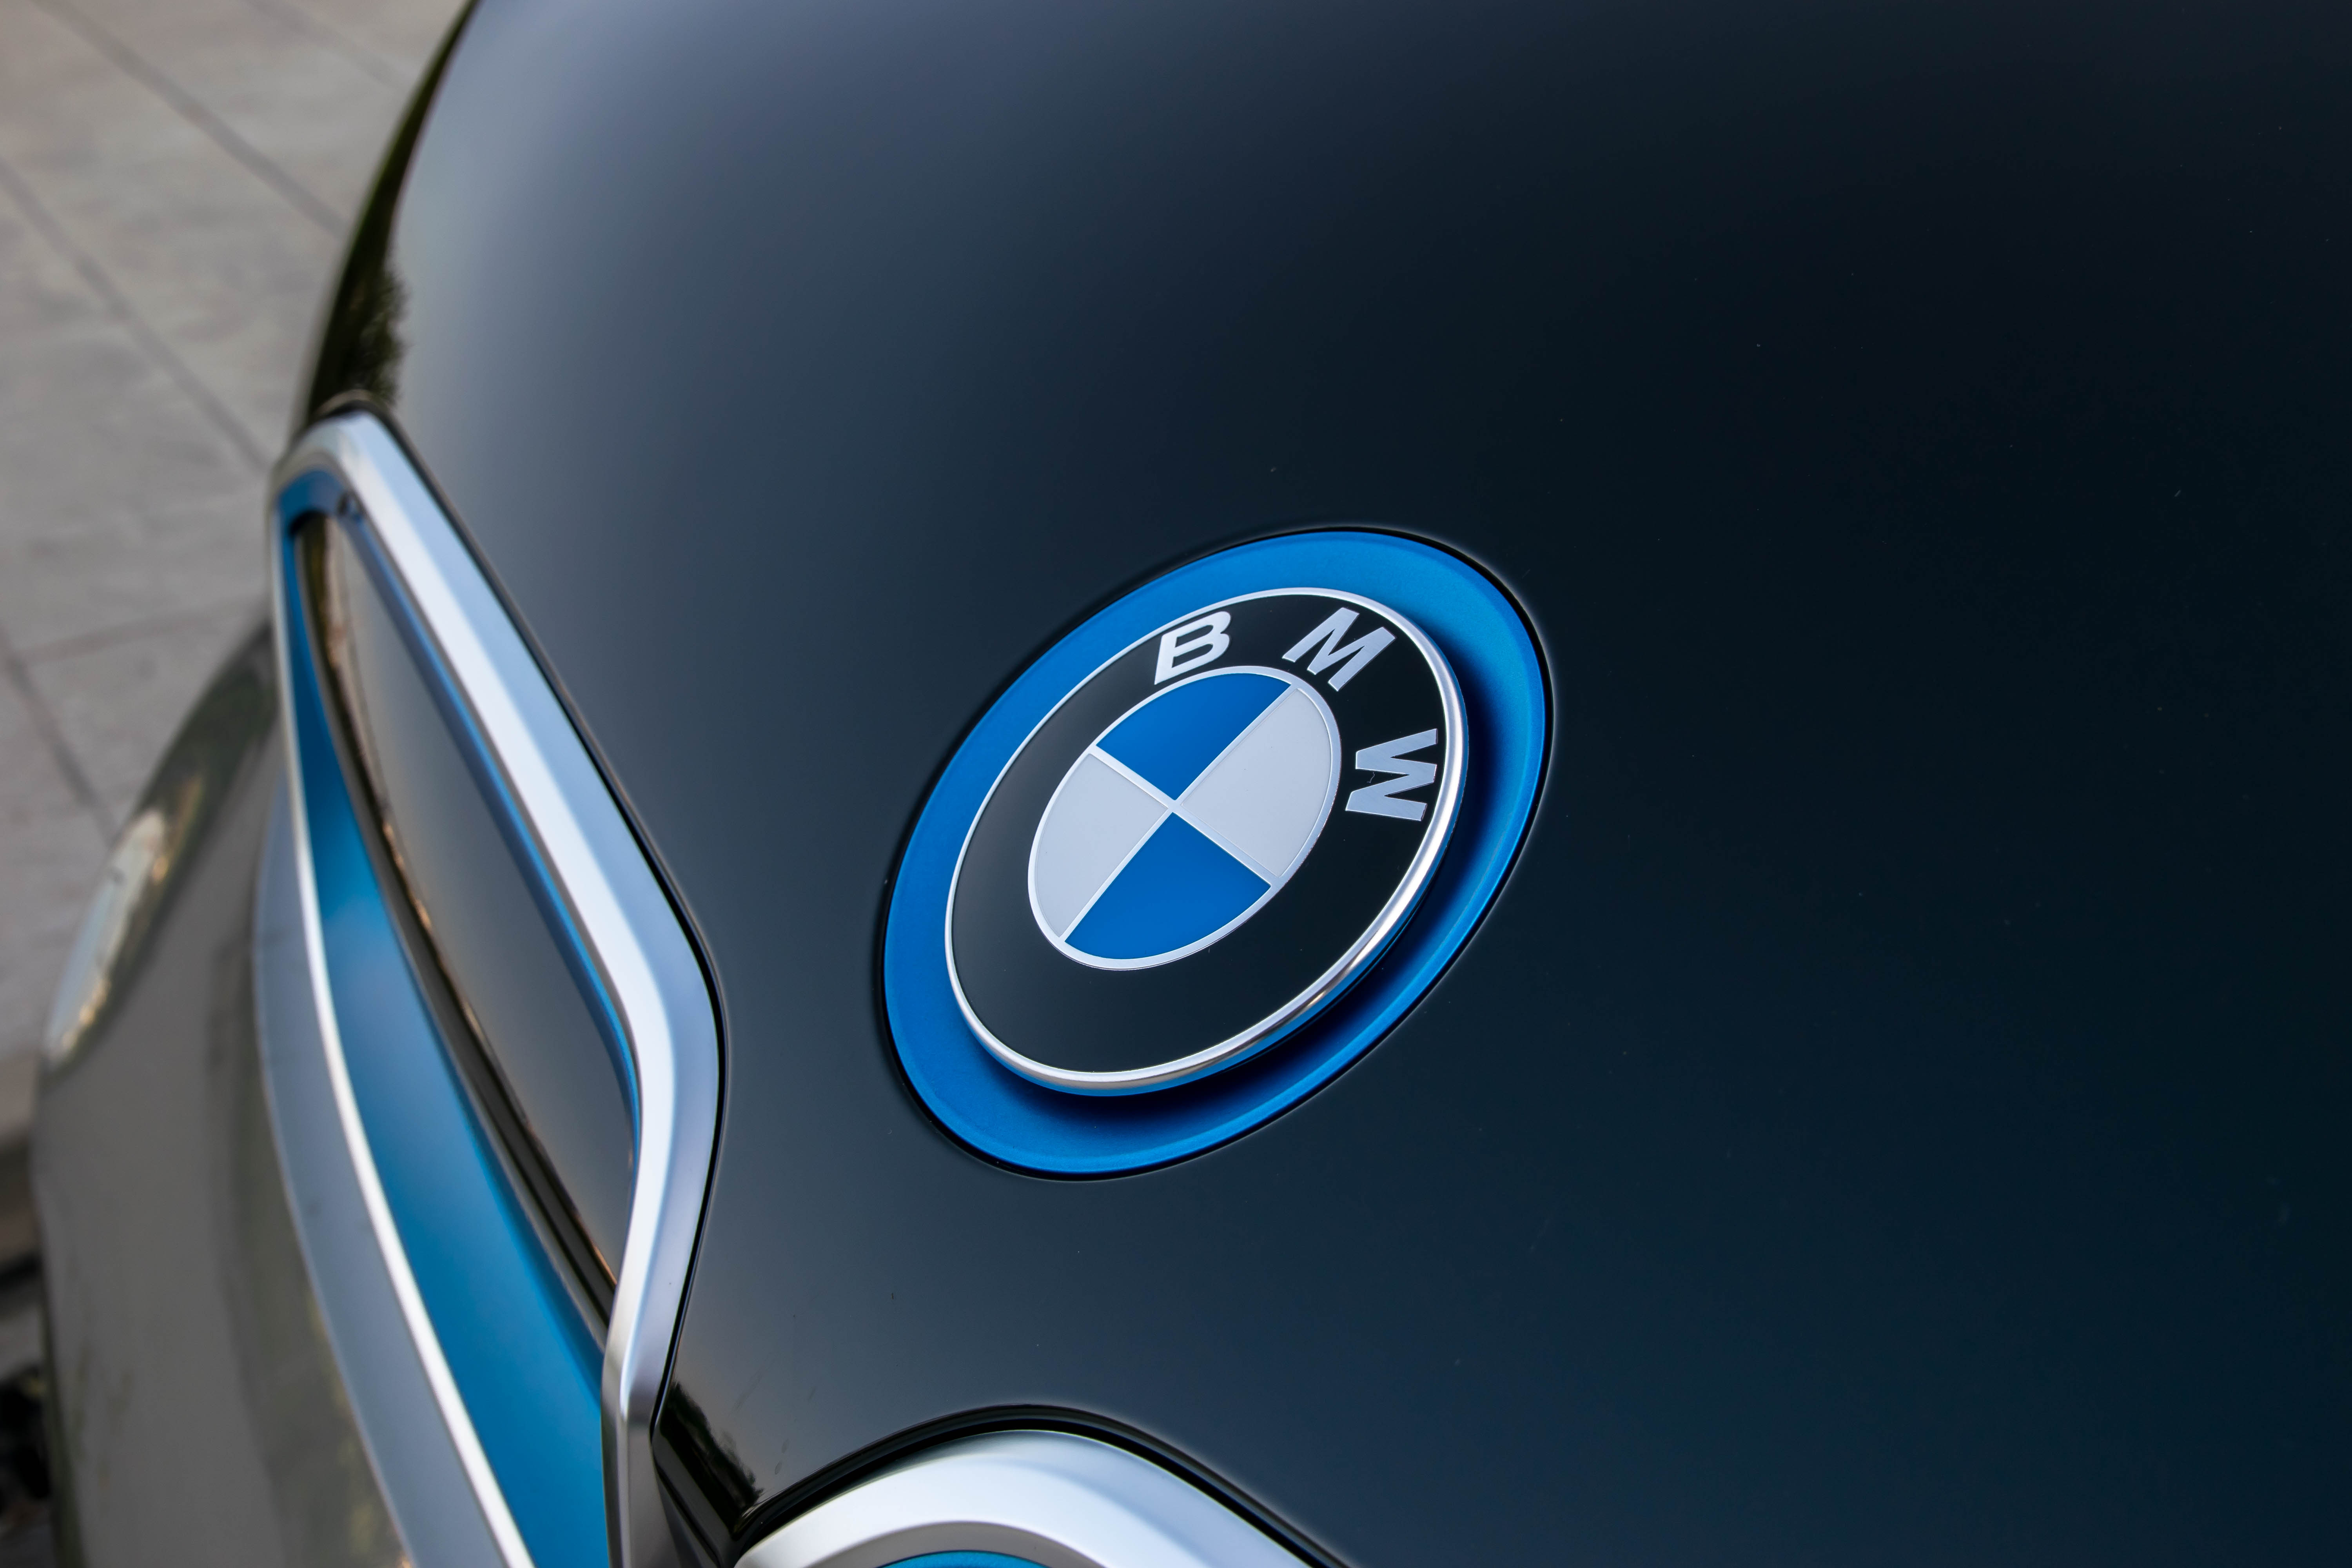 BMW is one of Fortune's Most Admired Companies in 2020